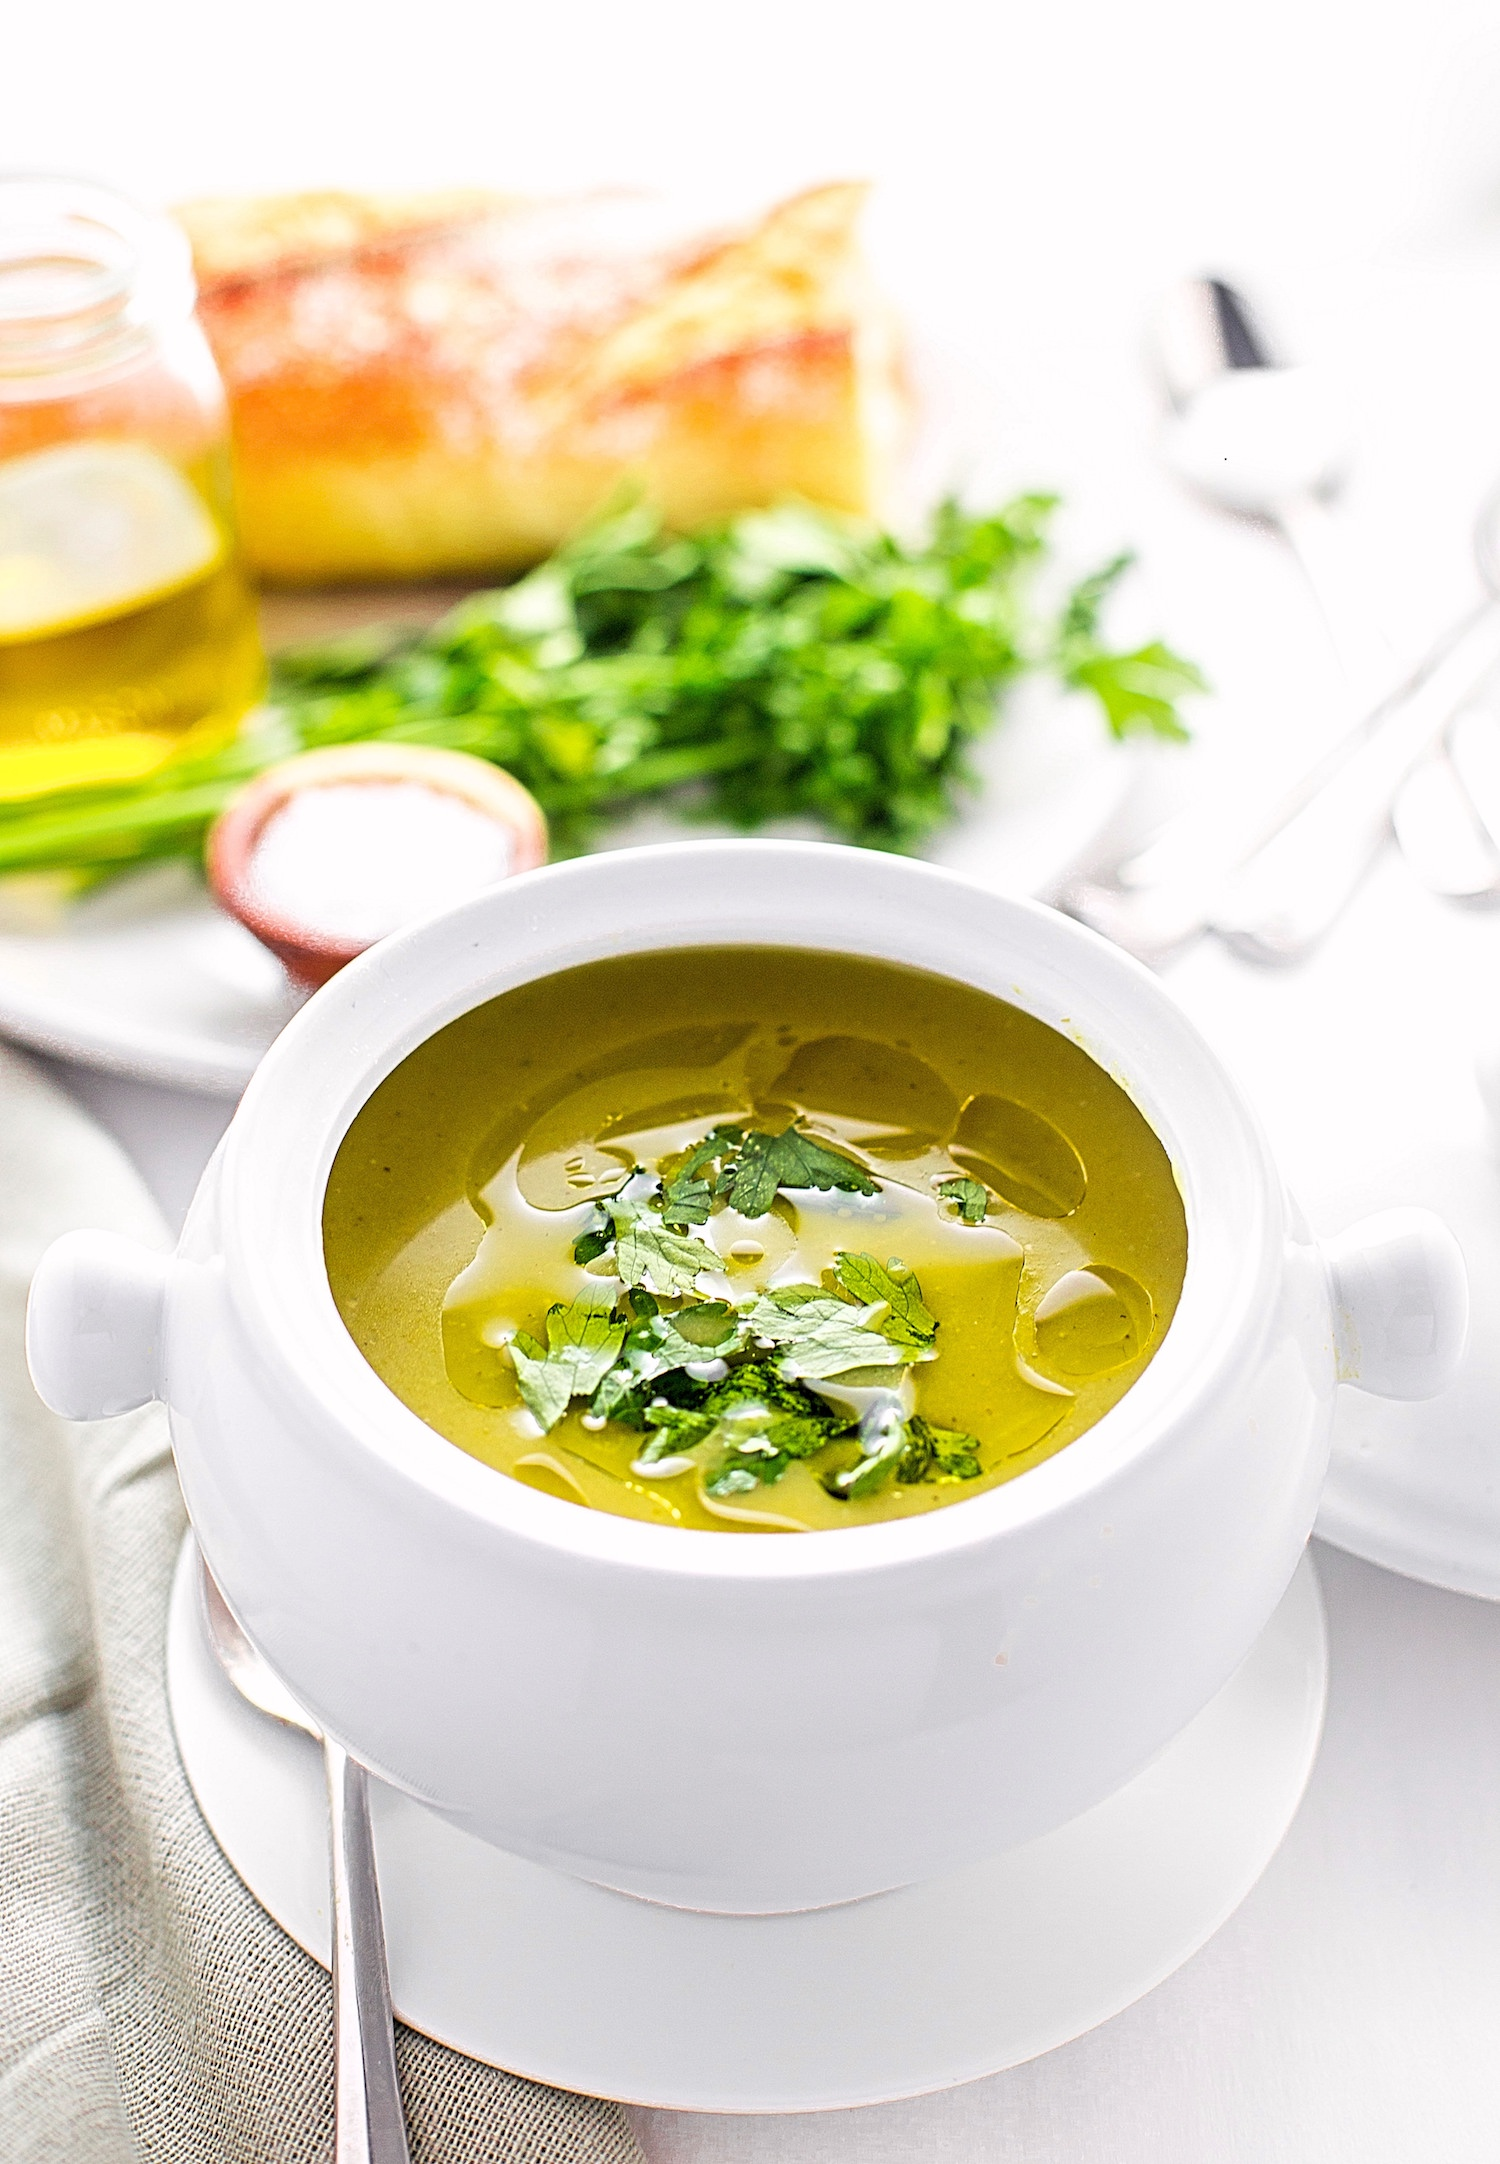 Quick and Easy Asparagus Soup: basic, non-dairy cream of asparagus soup. Super flavorful and wholesome! | TrufflesandTrends.com